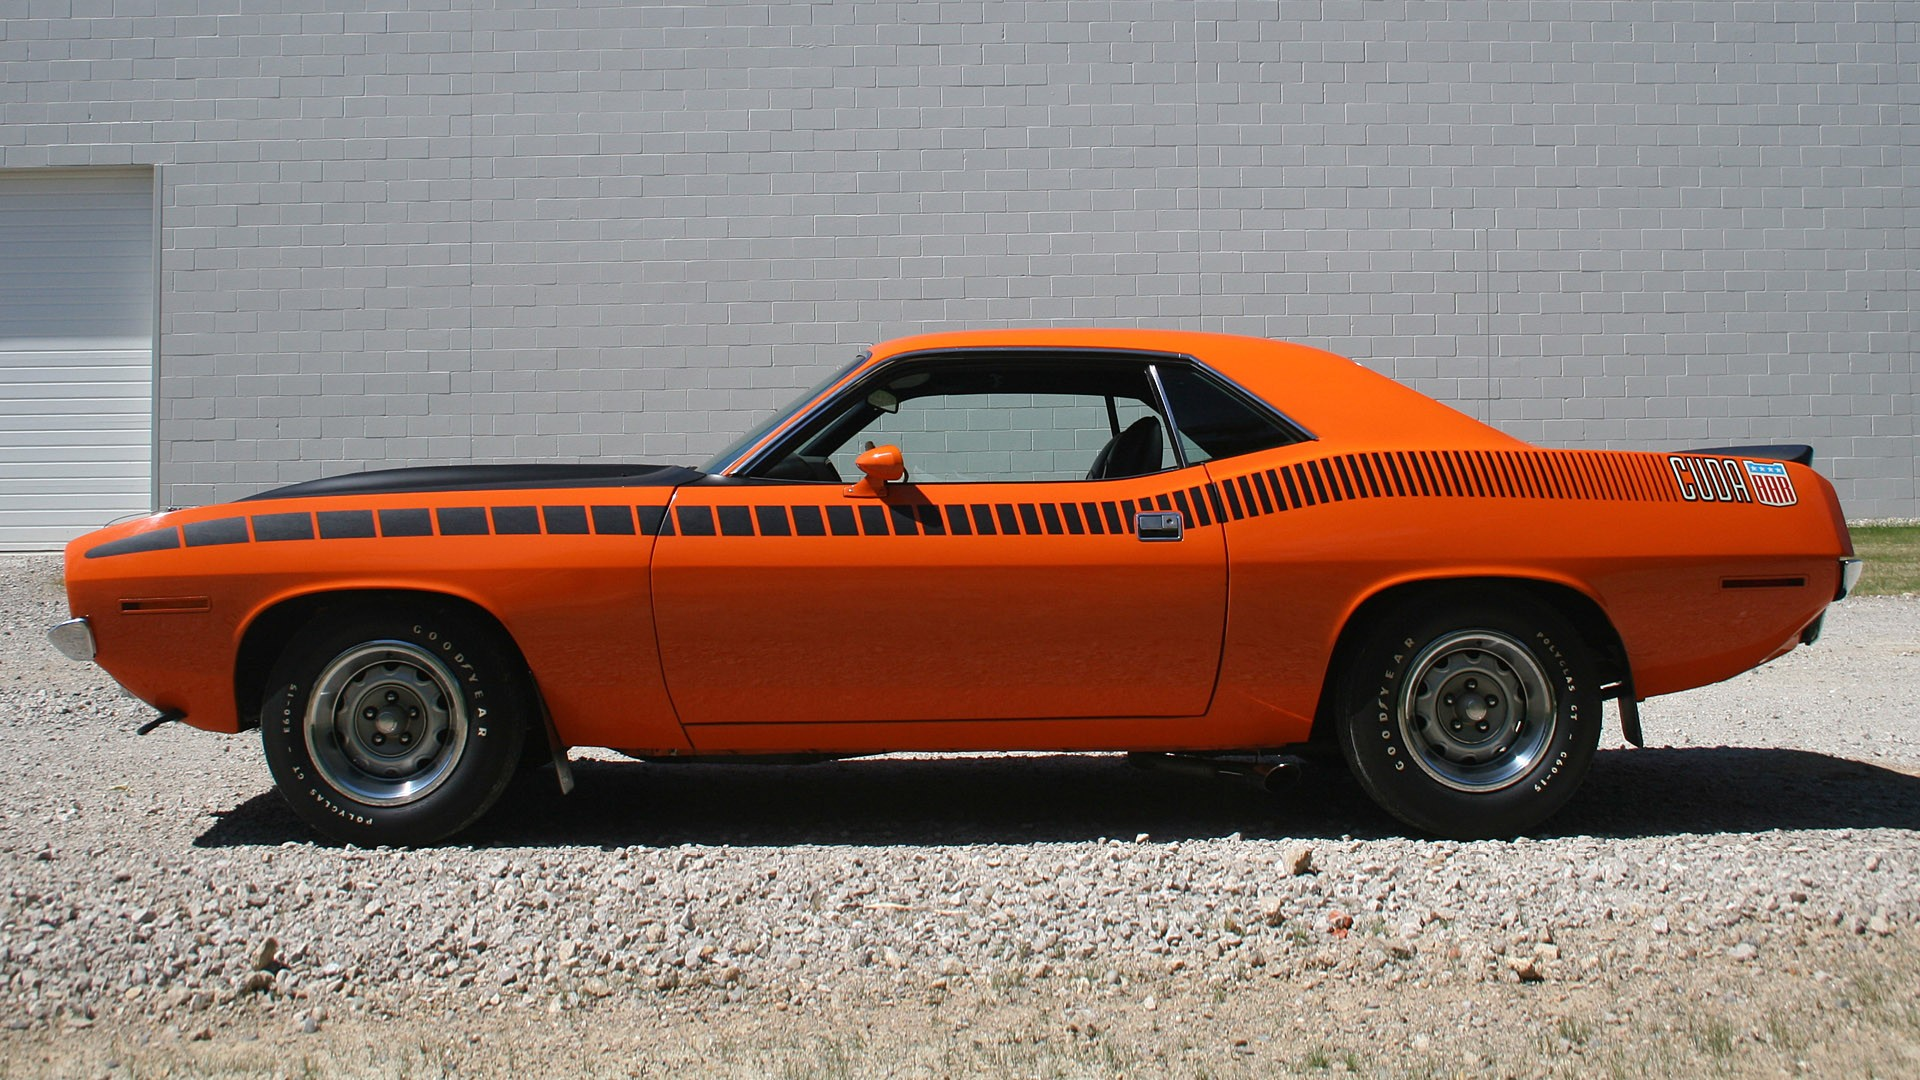 Muscle Cars Usa Plymouth Barracuda Classic Orange Wallpaper